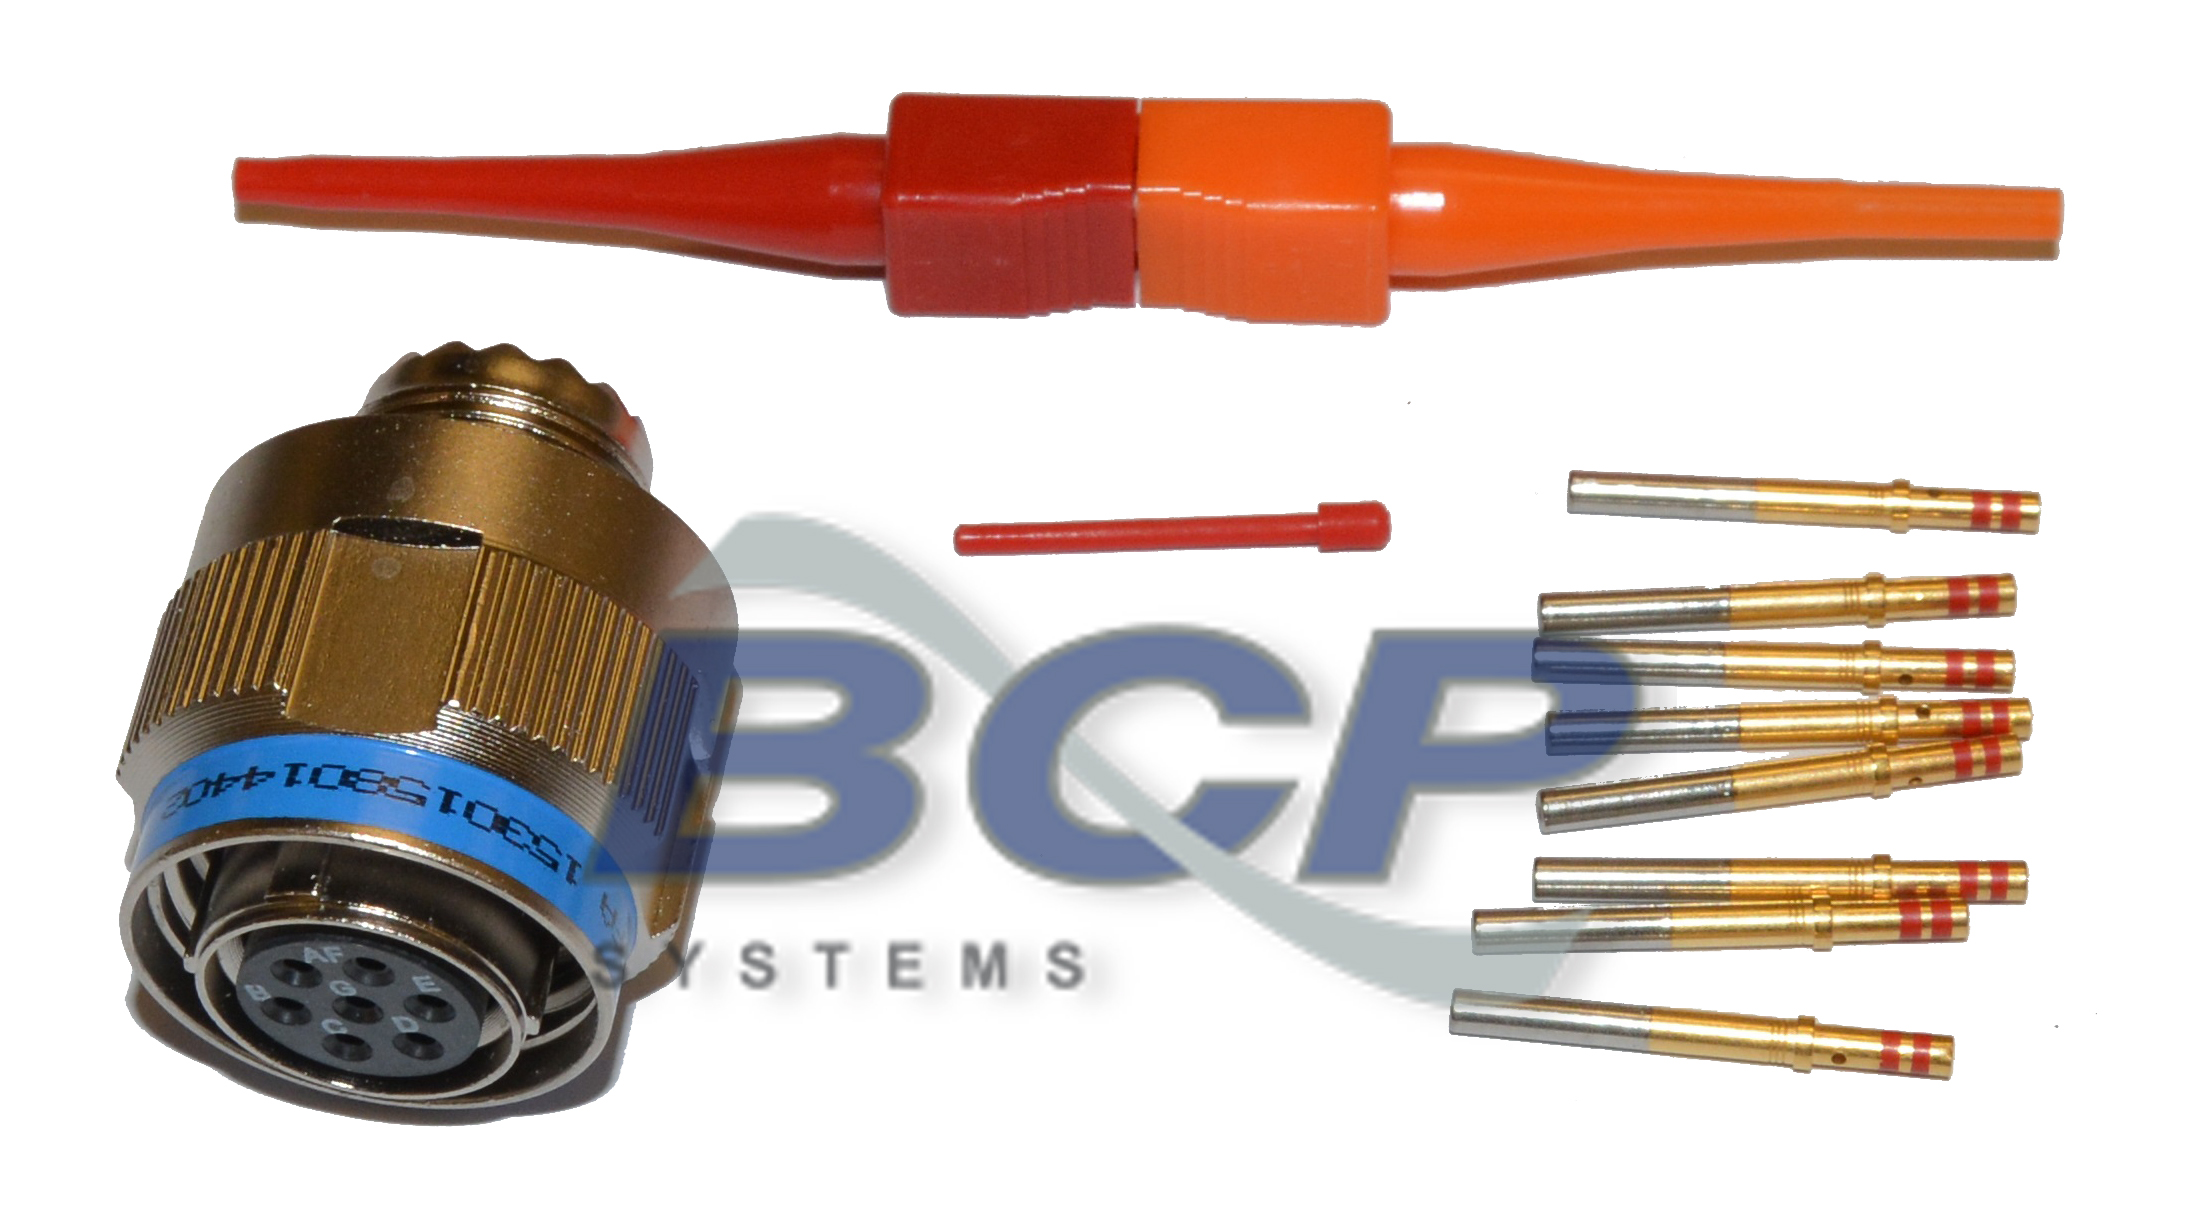 Bcp Systems Specialized Wire Harness Assembly And Repair Services For The Aerospace Medical Oil Industries